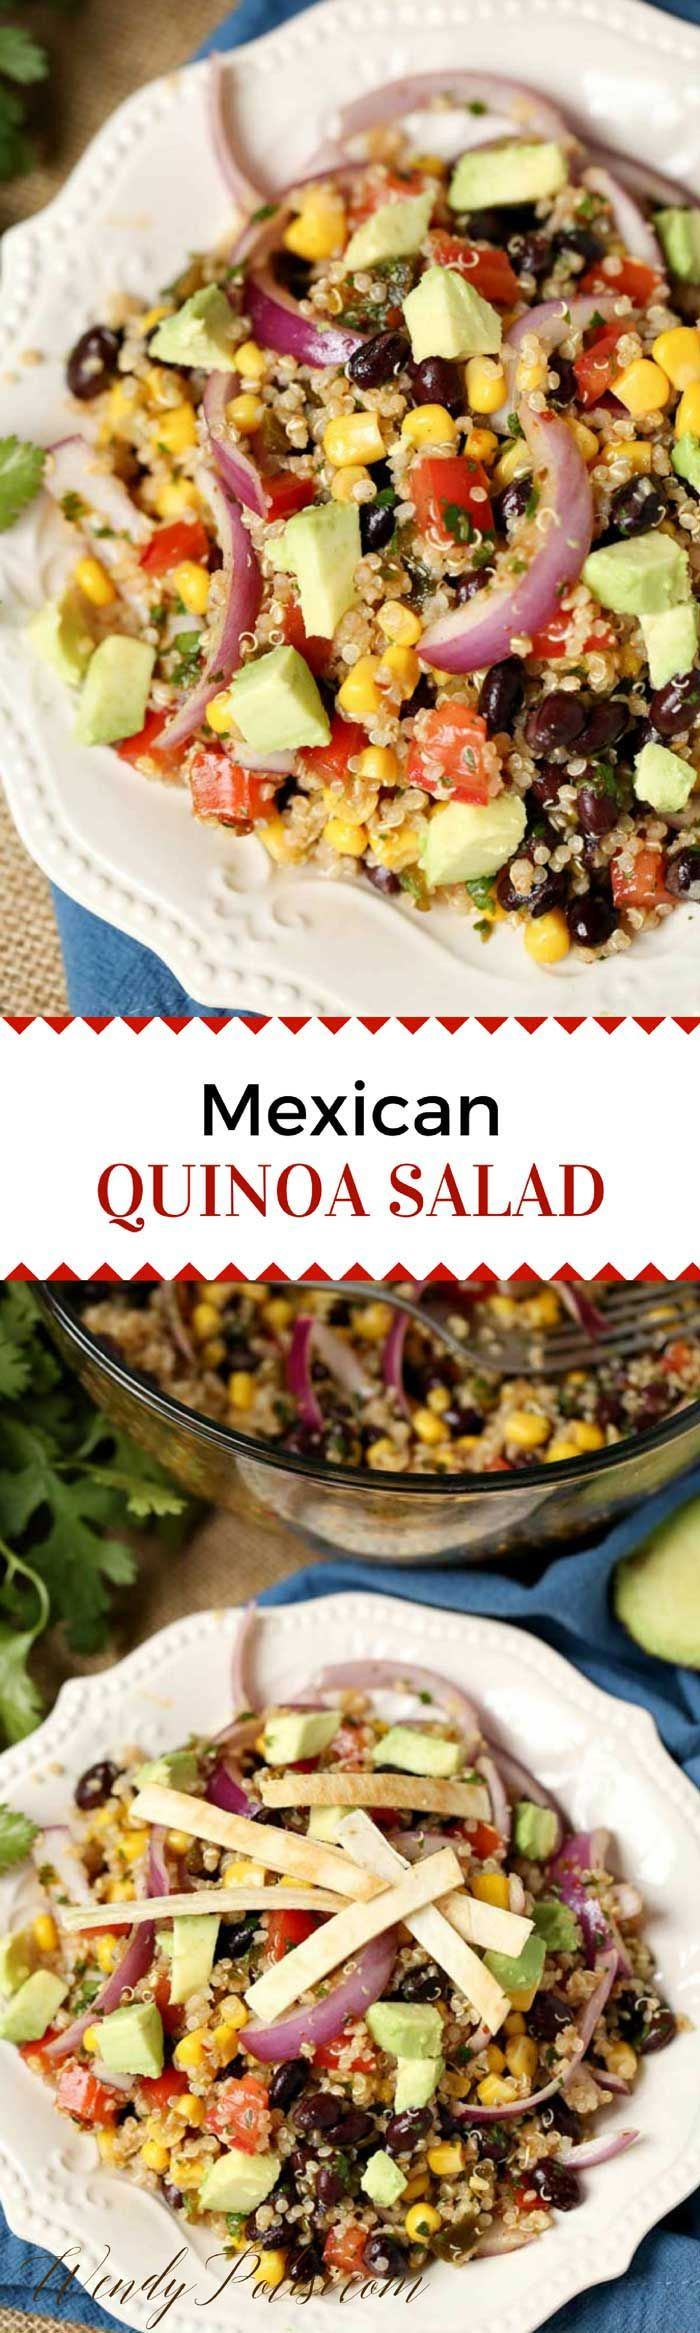 This Healthy Mexican Quinoa Salad with Black Beans is the perfect easy recipe for your clean eating diet.  It is vegan, dairy-free and gluten-free.  #vegan #quinoa #salad #healthy #mexican